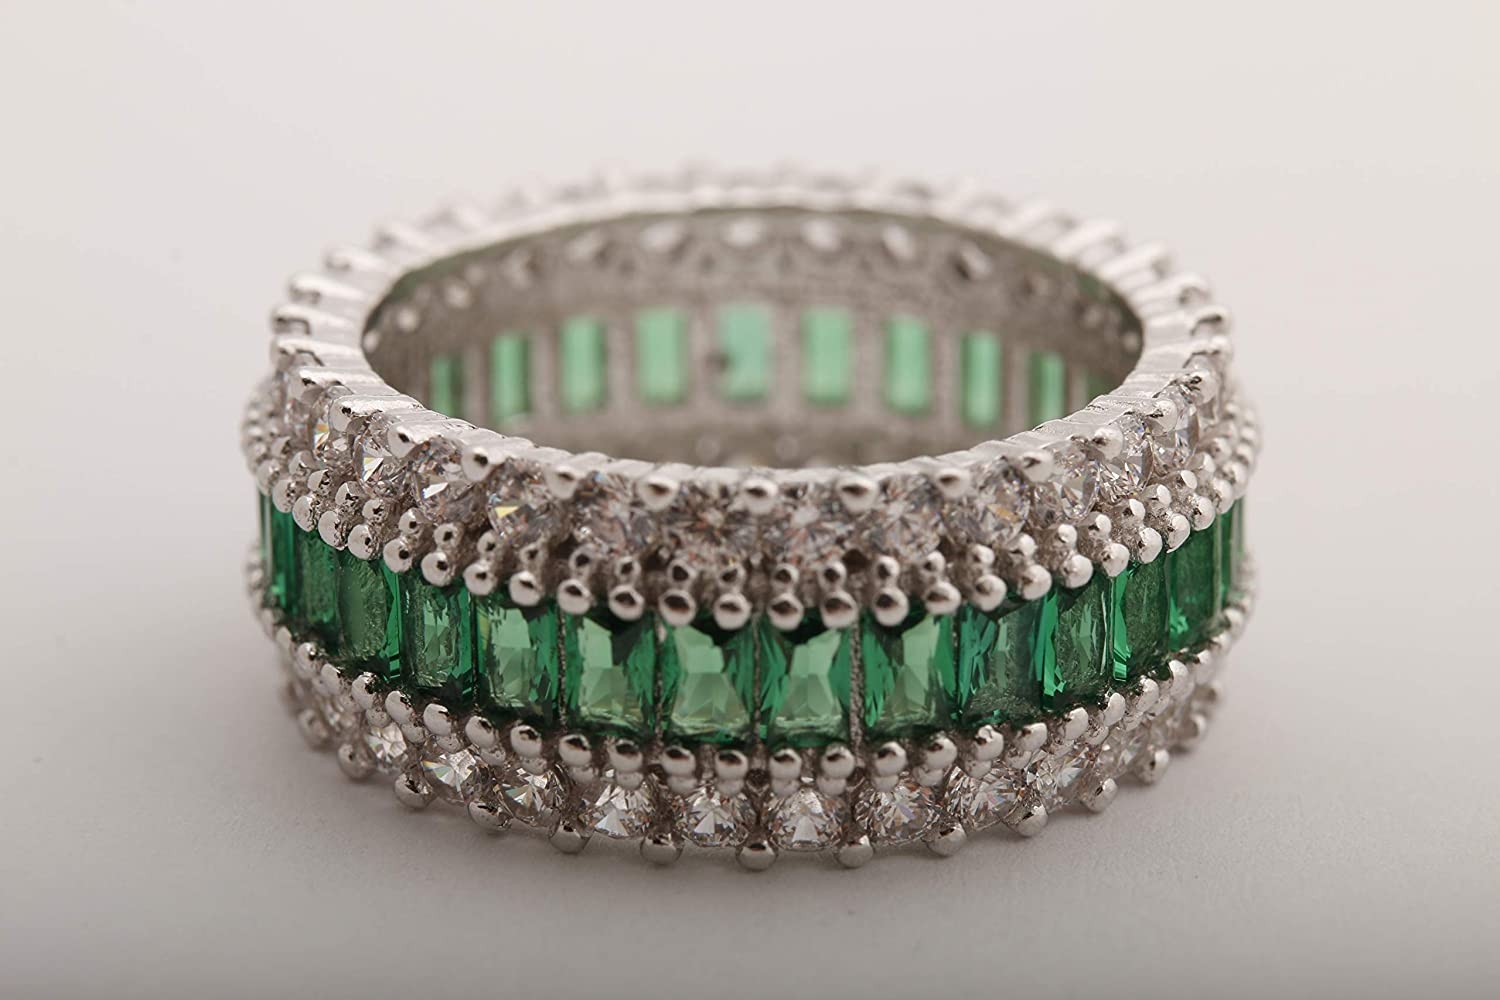 Turkish Handmade Jewelry Baguette Shape Emerald and White Topaz 925 Sterling Silver Rhodium Band Ring Size Options New Special Design